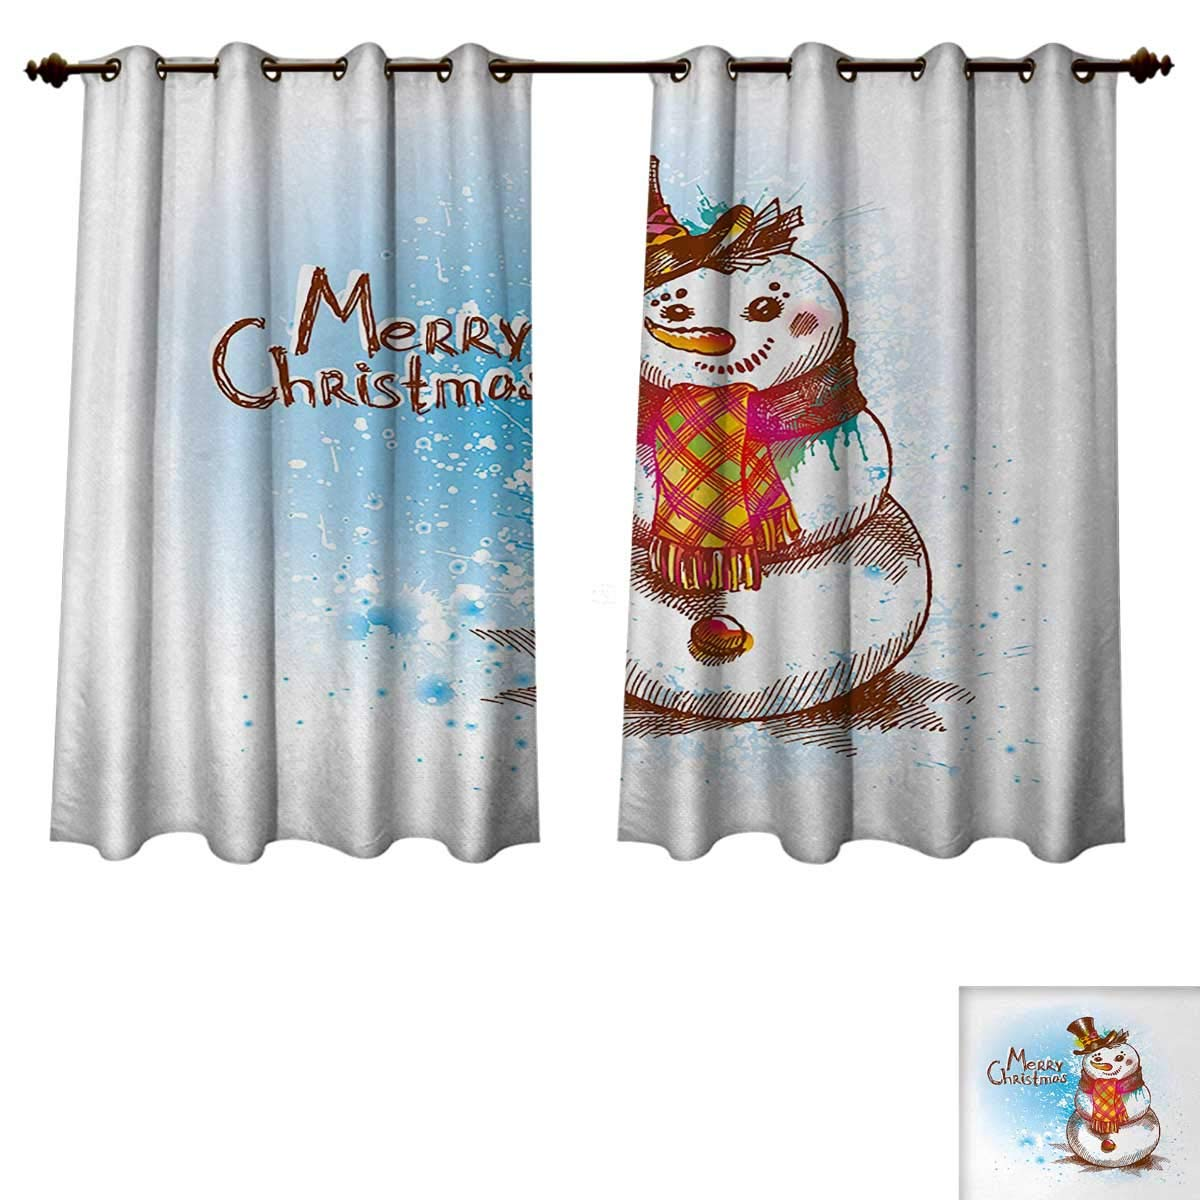 Anzhouqux Snowman Bedroom Thermal Blackout Curtains Sketch Style Artwork Traditional Figure with Merry Christmas Wish Hat and Scarf Window Curtain Drape Multicolor W55 x L39 inch